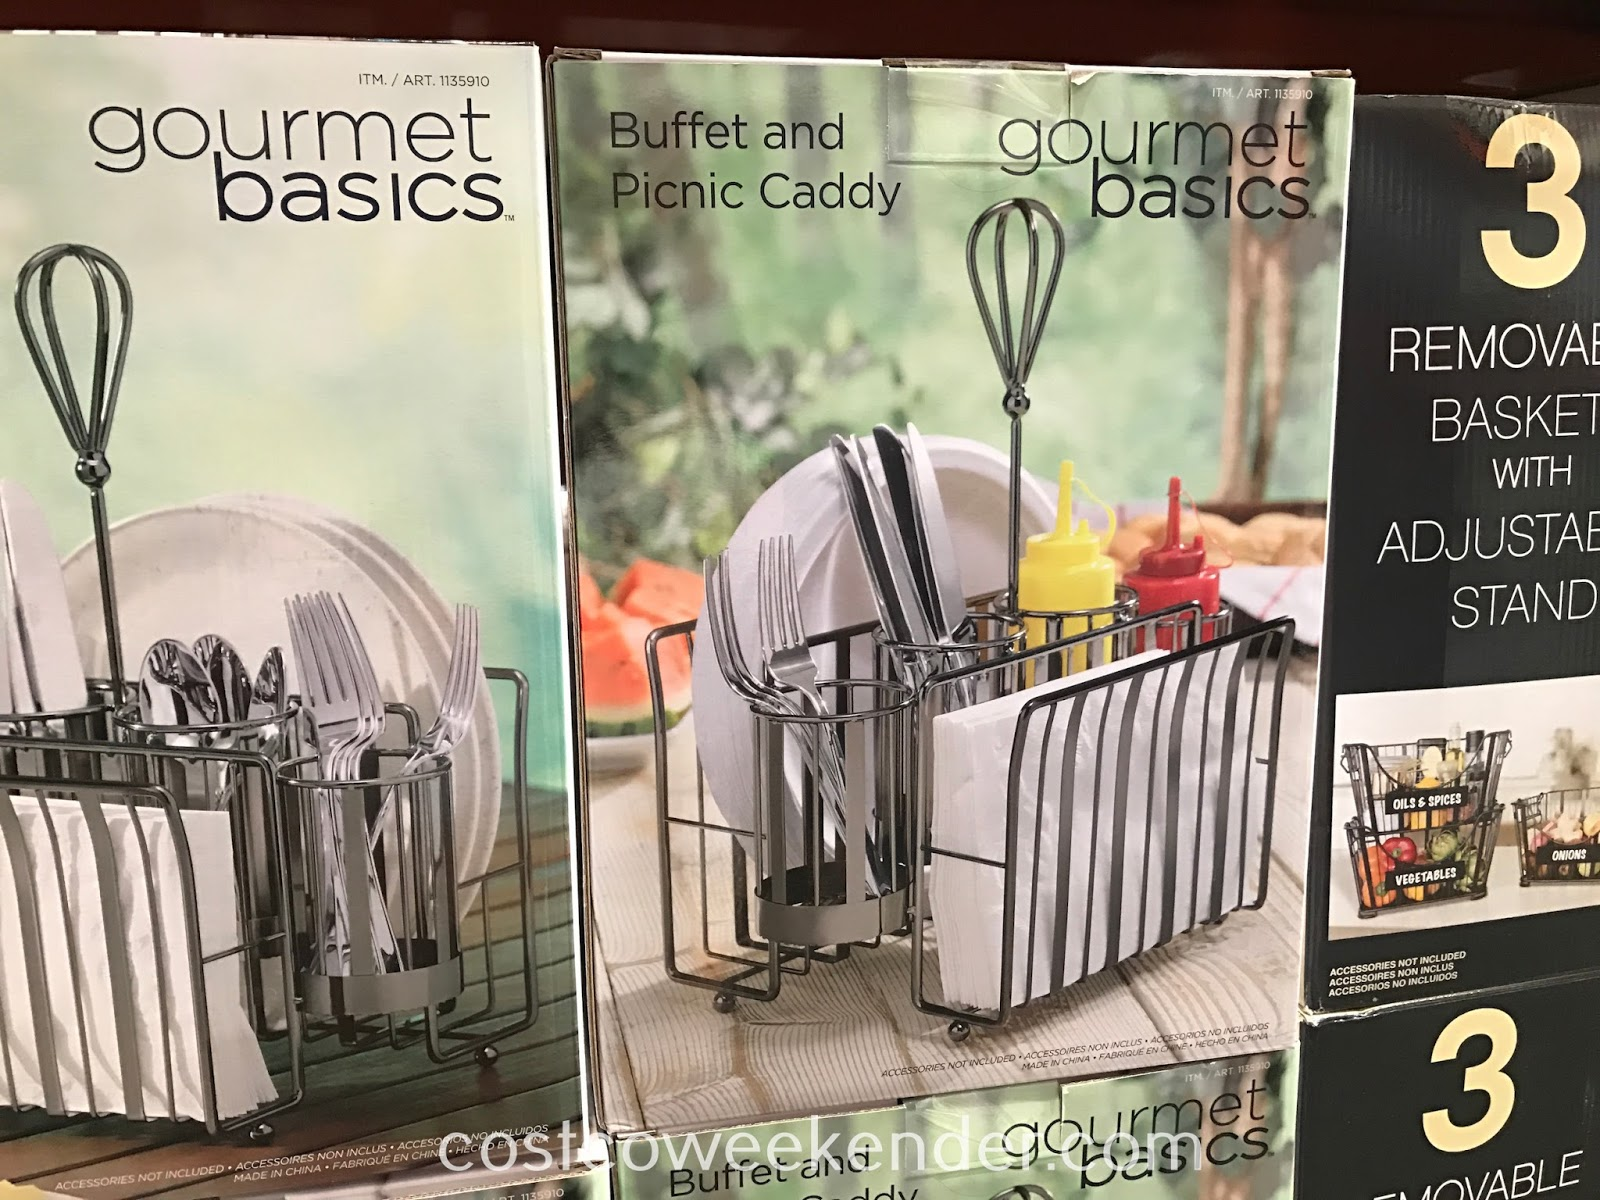 Keep cutlery, utensils, and napkins all in one place for guests with the Gourmet Basics by Mikasa Buffet and Picnic Caddy